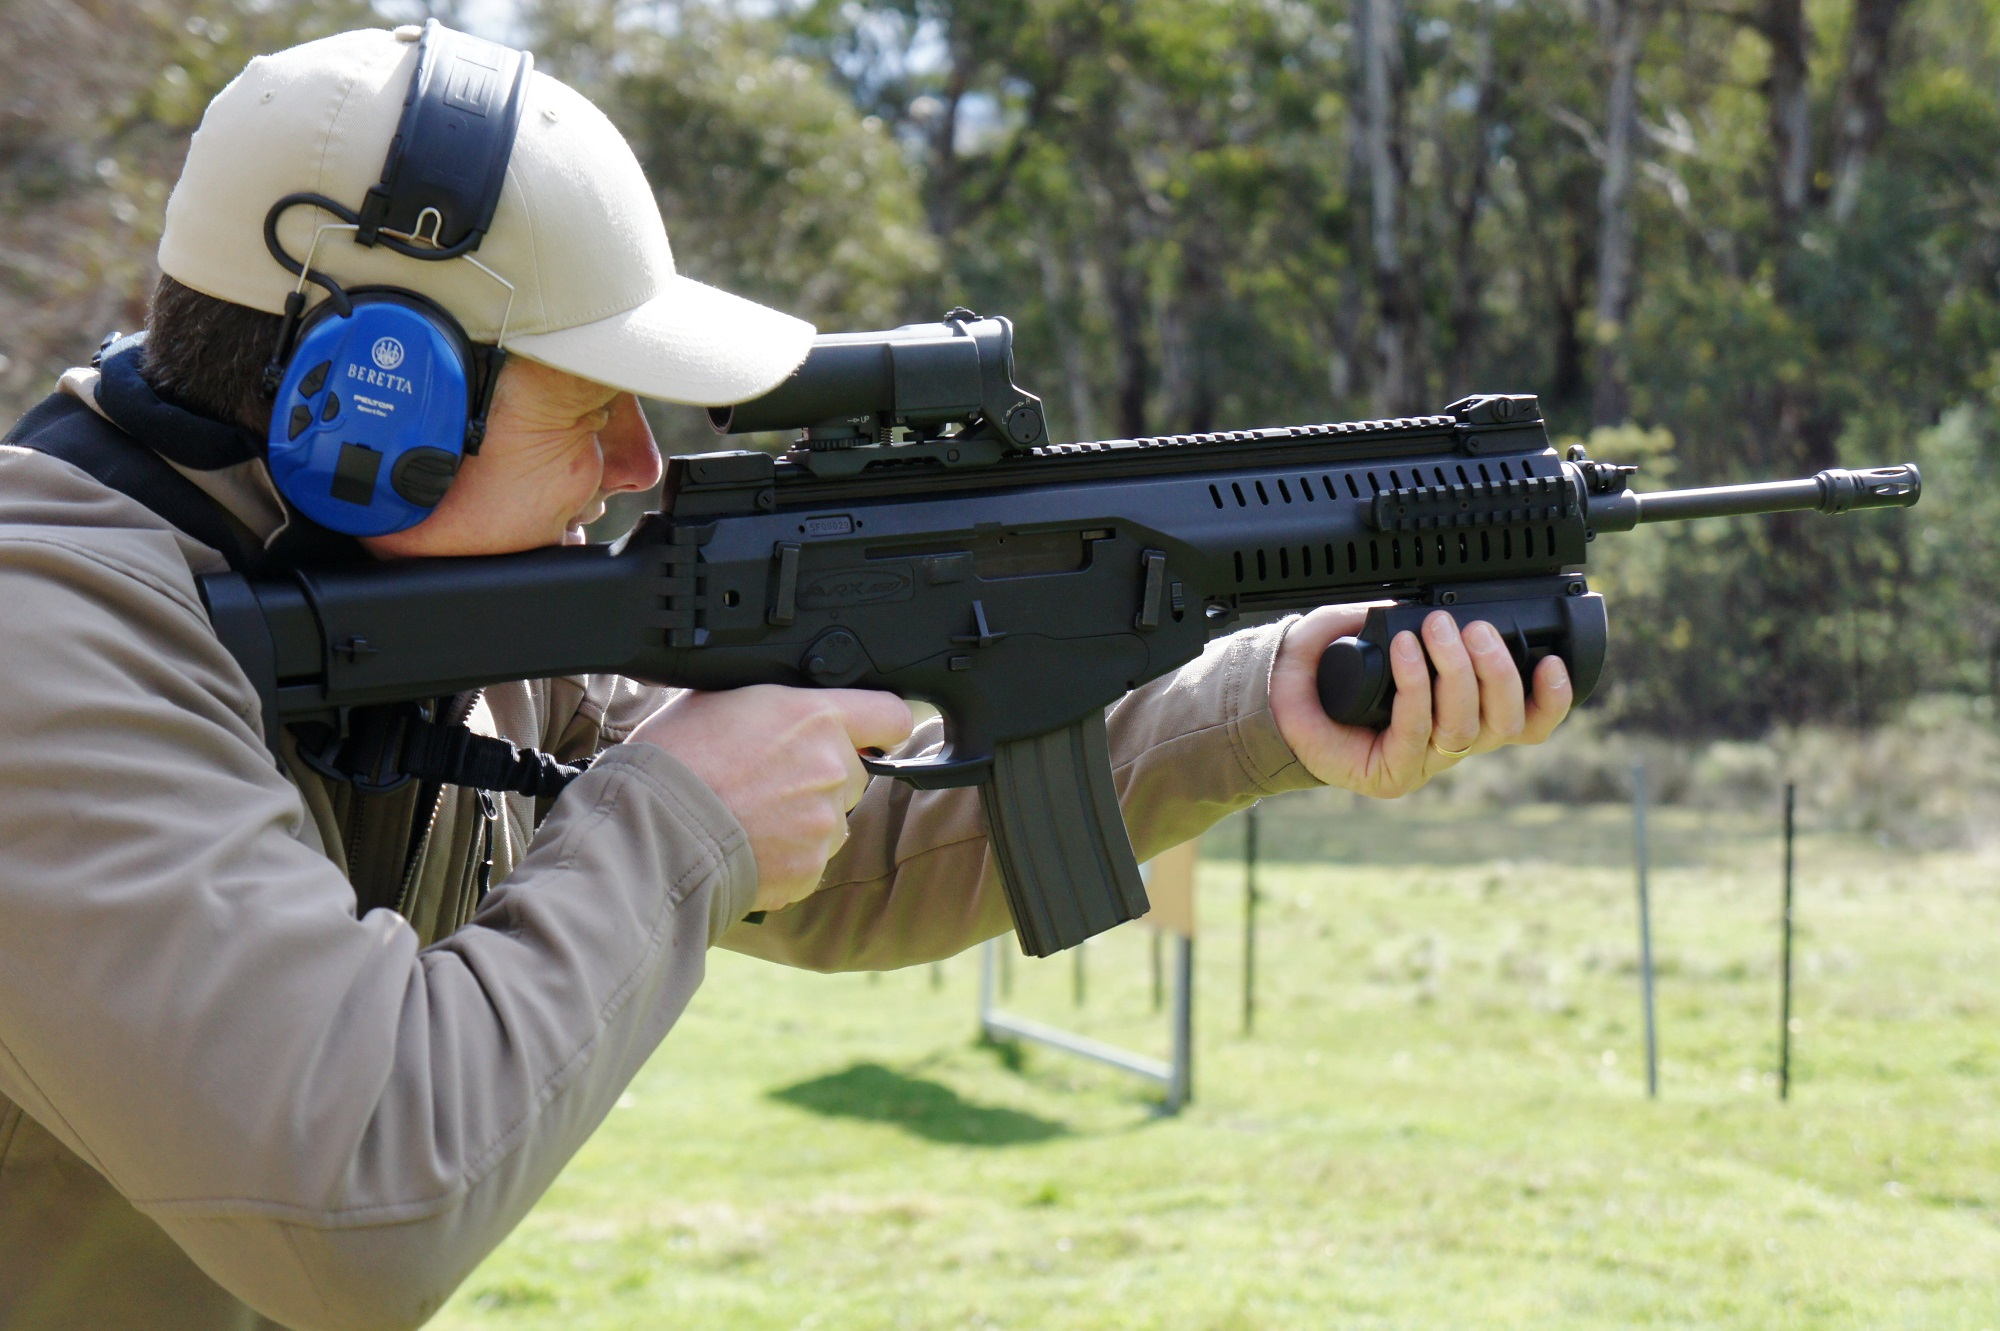 Beretta will finally launch the long-awaited civilian version of the ARX-160 assault rifle this summer!